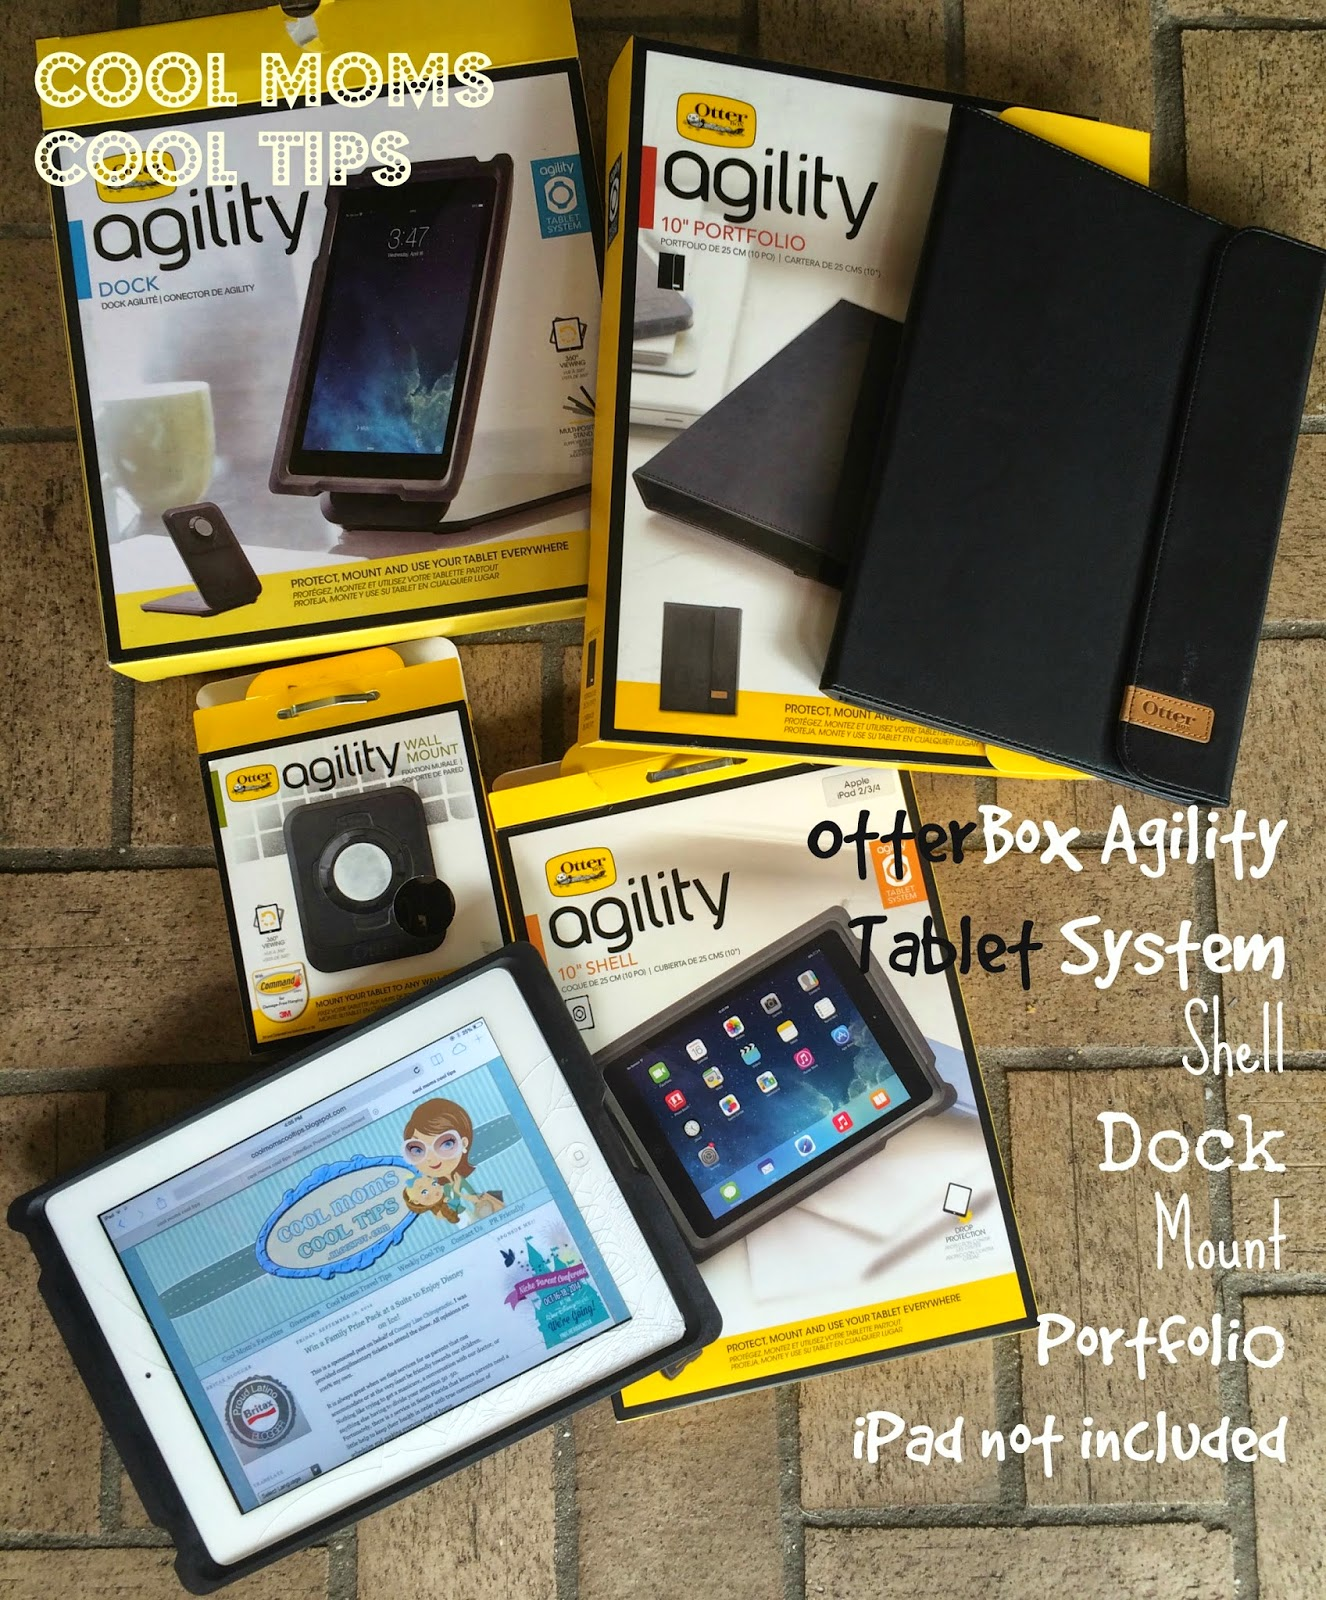 cool moms cool tips otterbox agility tablet sytem pieces